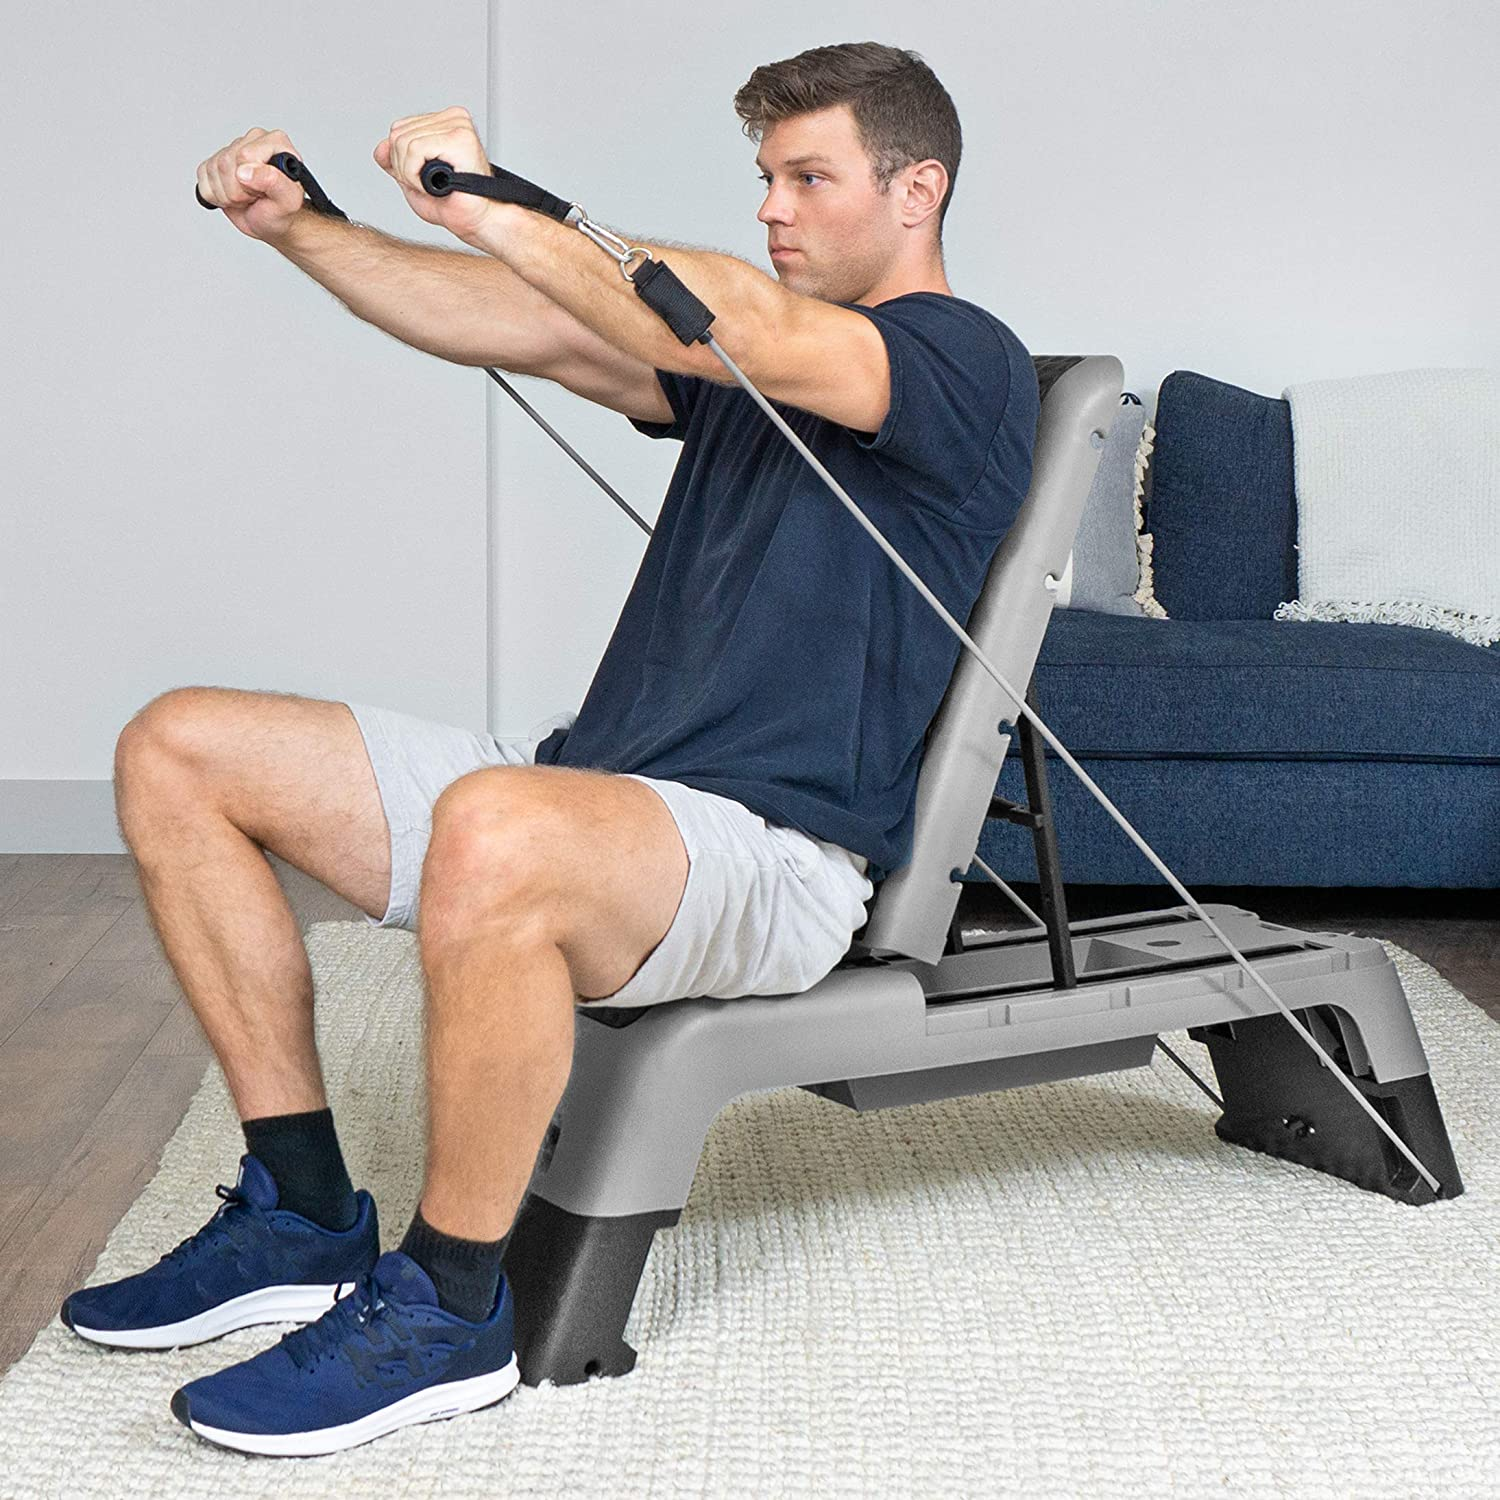 Multifunctional Workout Bench for Weight Training ProsourceFit Fitness Aerobic Deck Stepper with Resistance Band Plyometrics for Home Gym